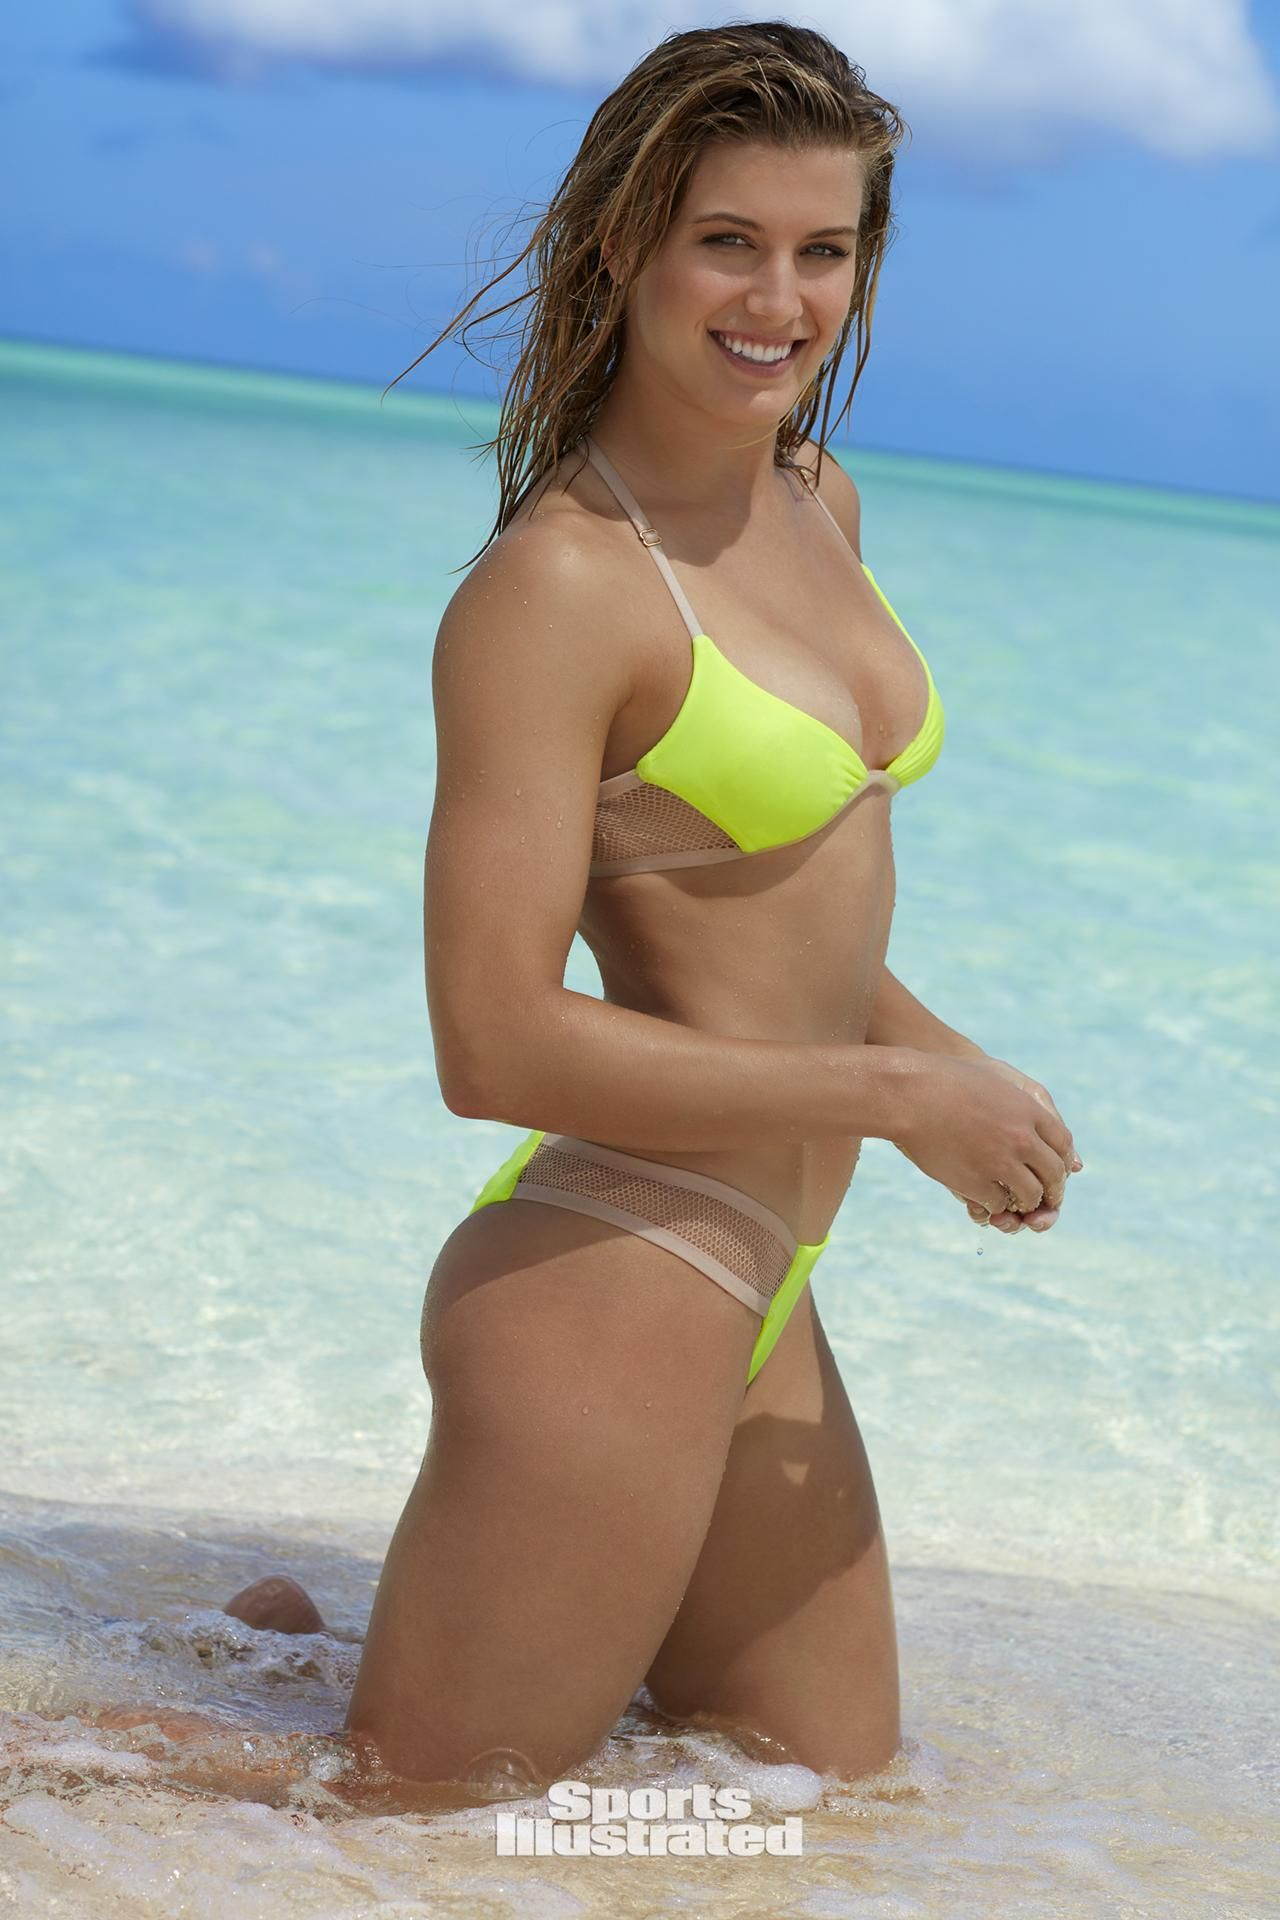 Eugenie Bouchard Bikini Photos 2017 Sports Illustrated